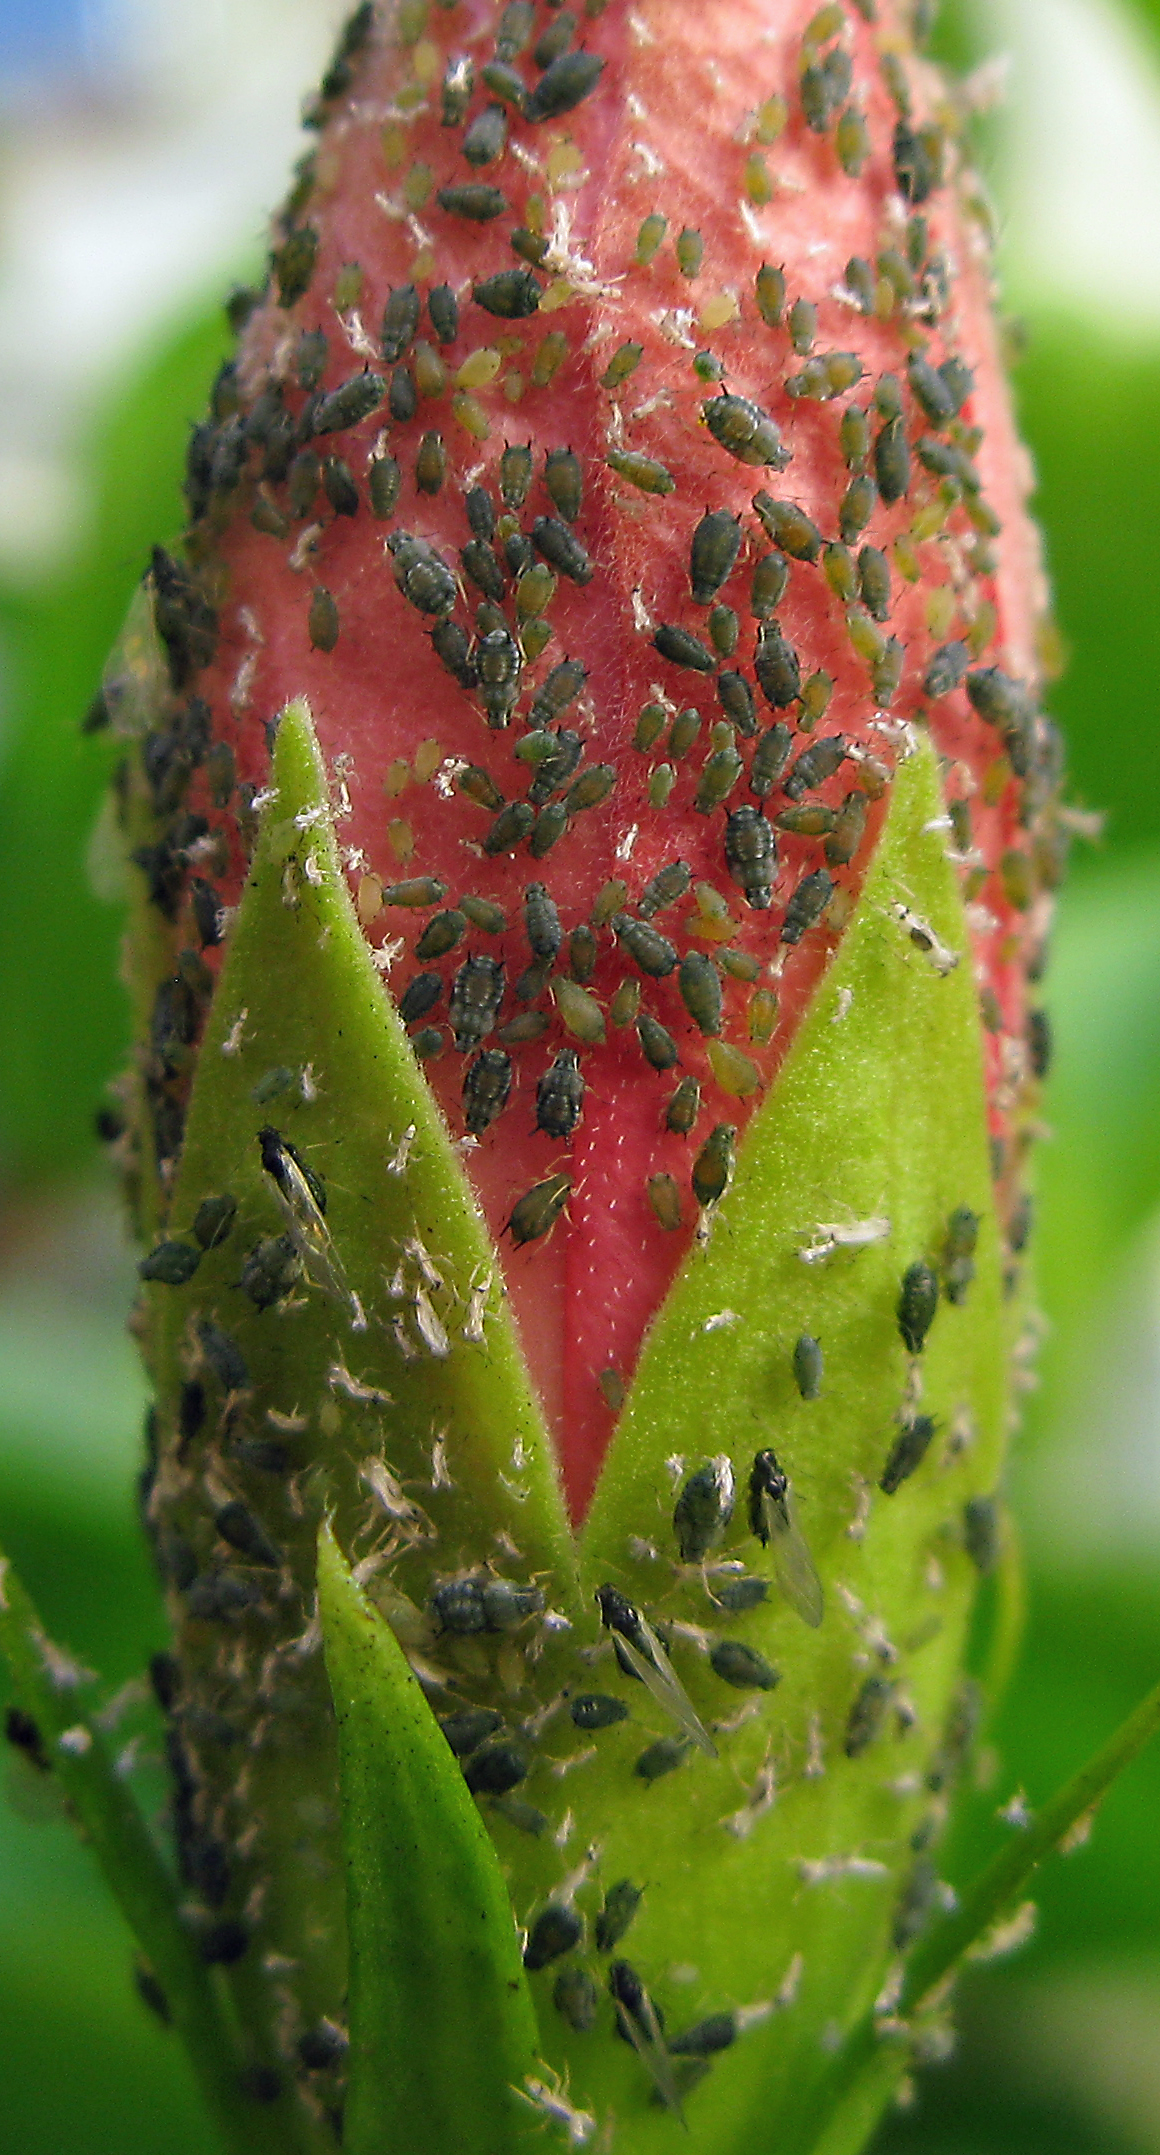 File Aphids On An Hibiscus Flower Bud 9 Aug 2016 Jpg